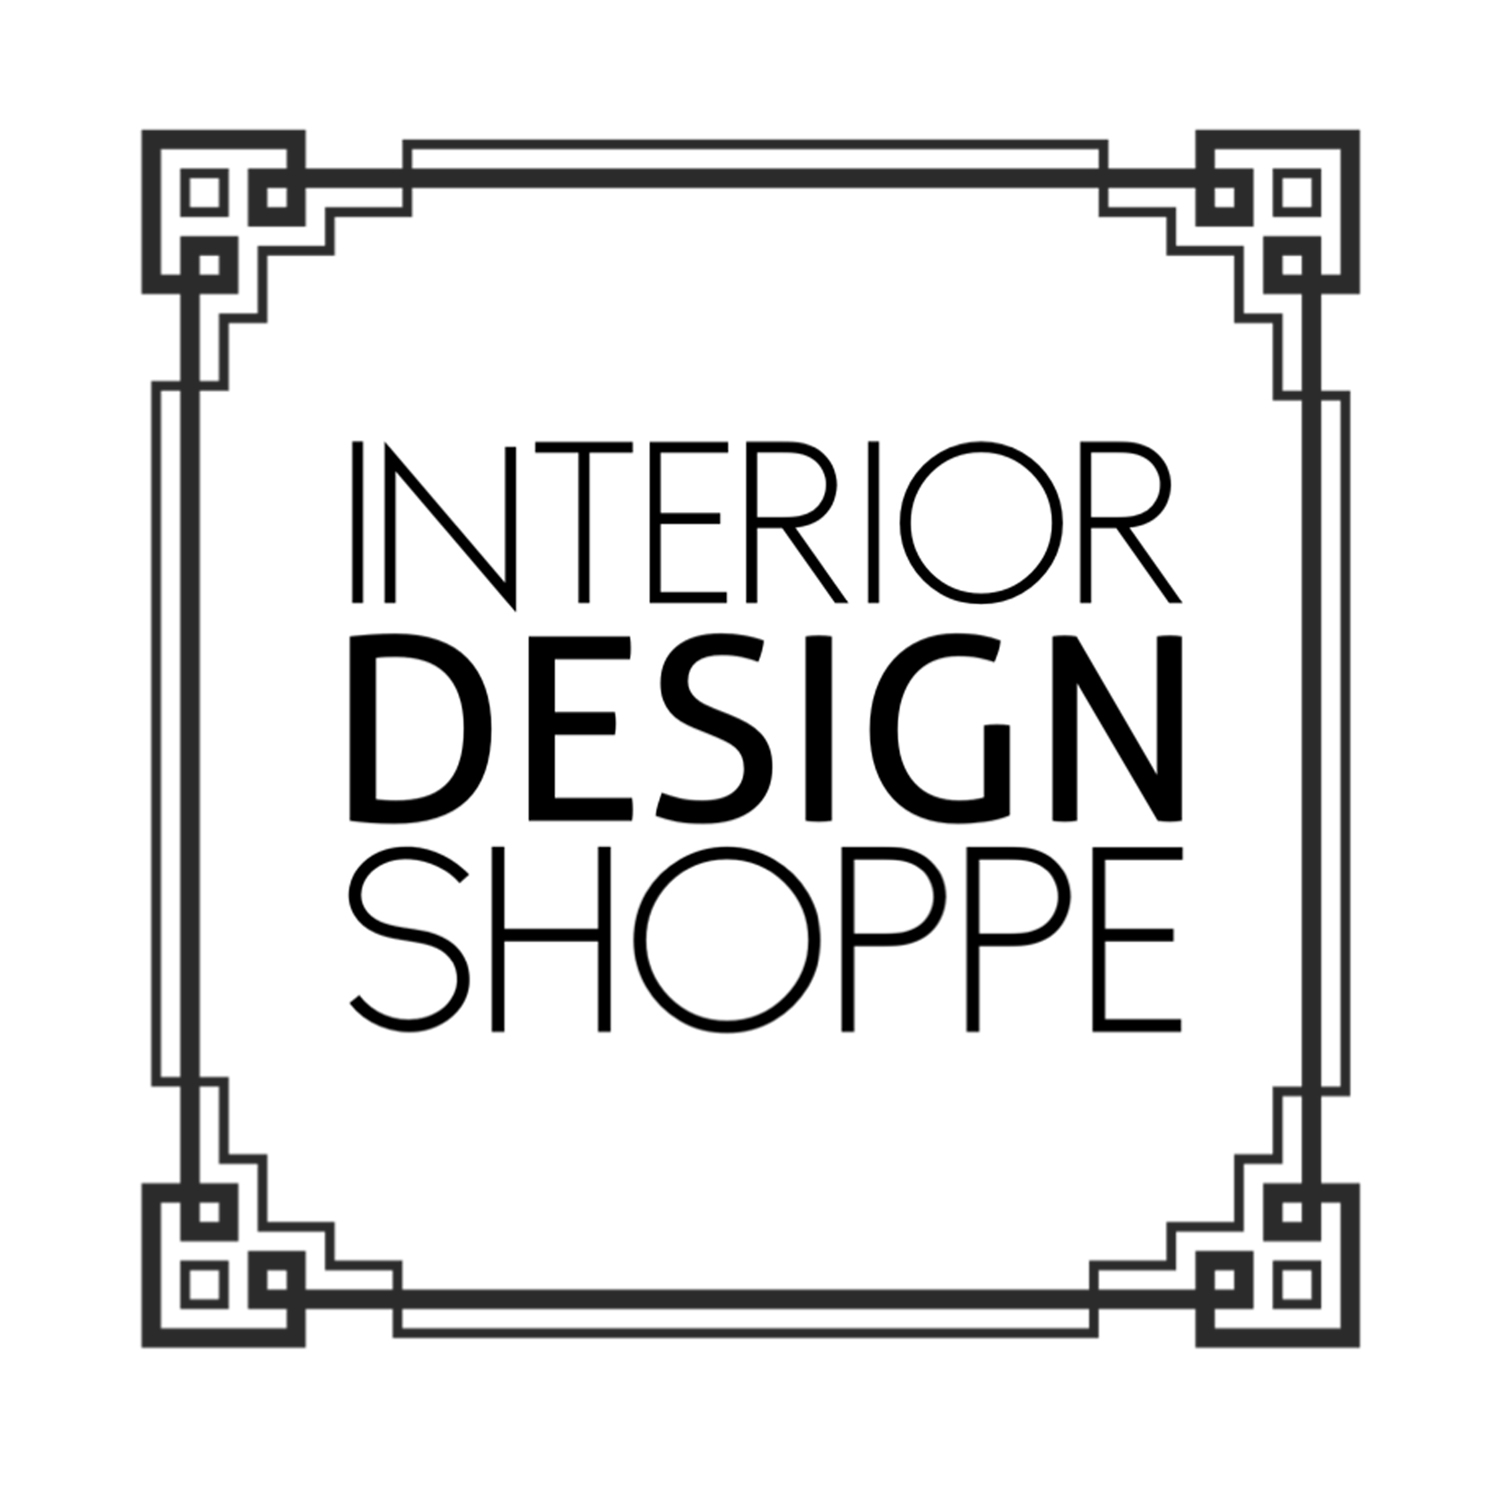 interior design shoppe logo interior design shoppe